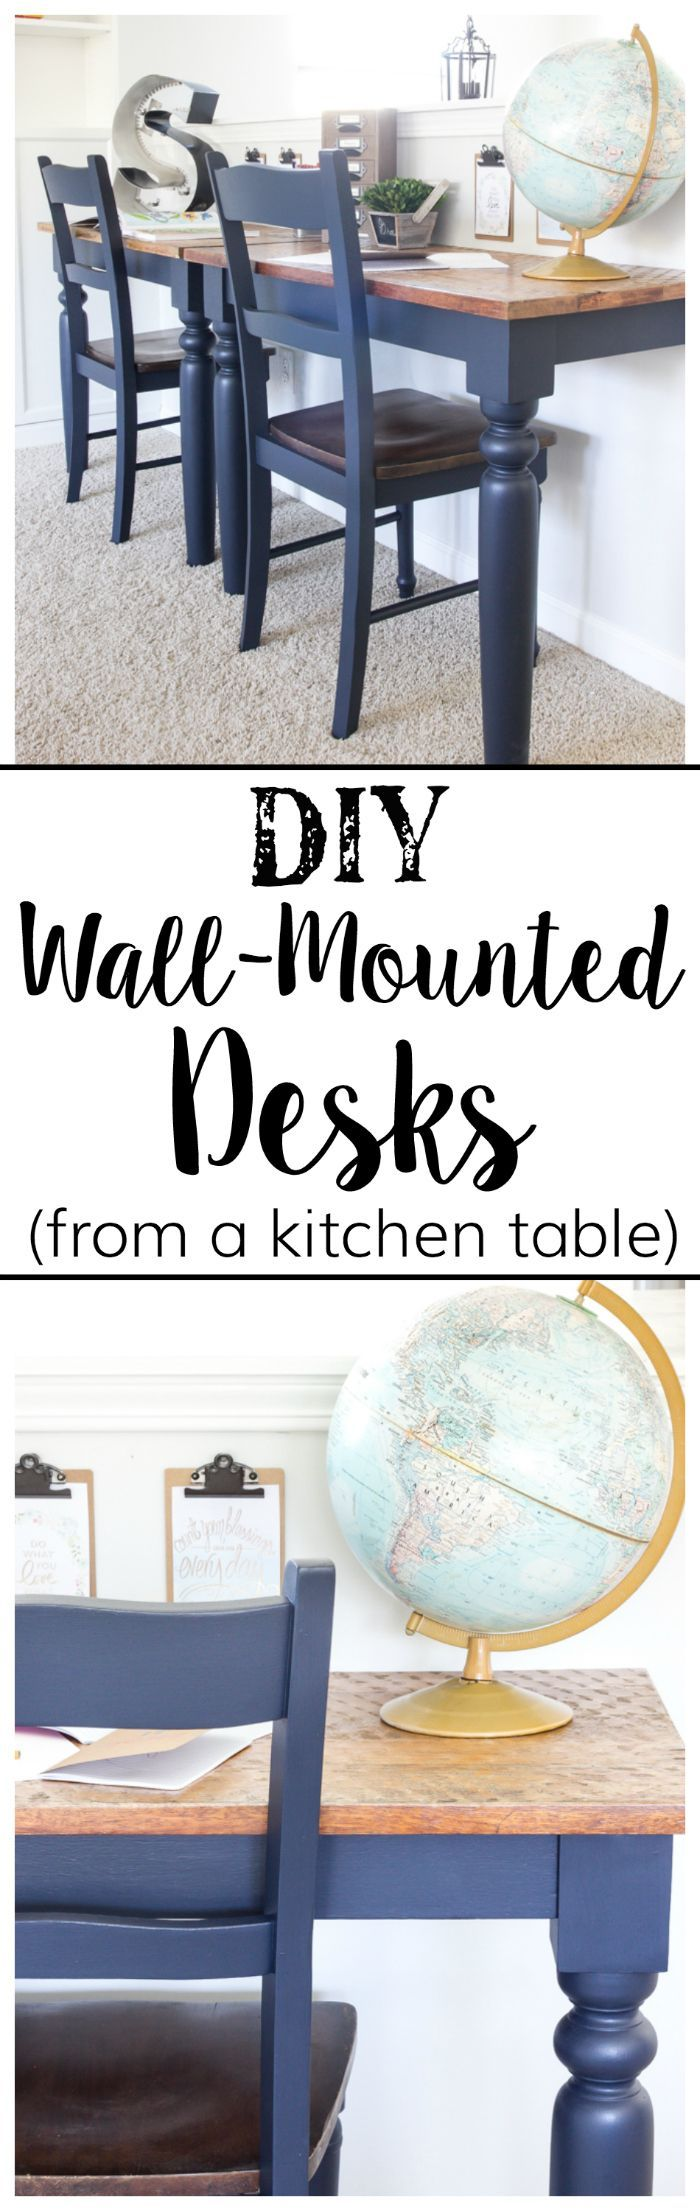 Photo of Repurposed Kitchen Table Wall Desks + ORC Week 3 – # Kitchen Table #ORC #R …